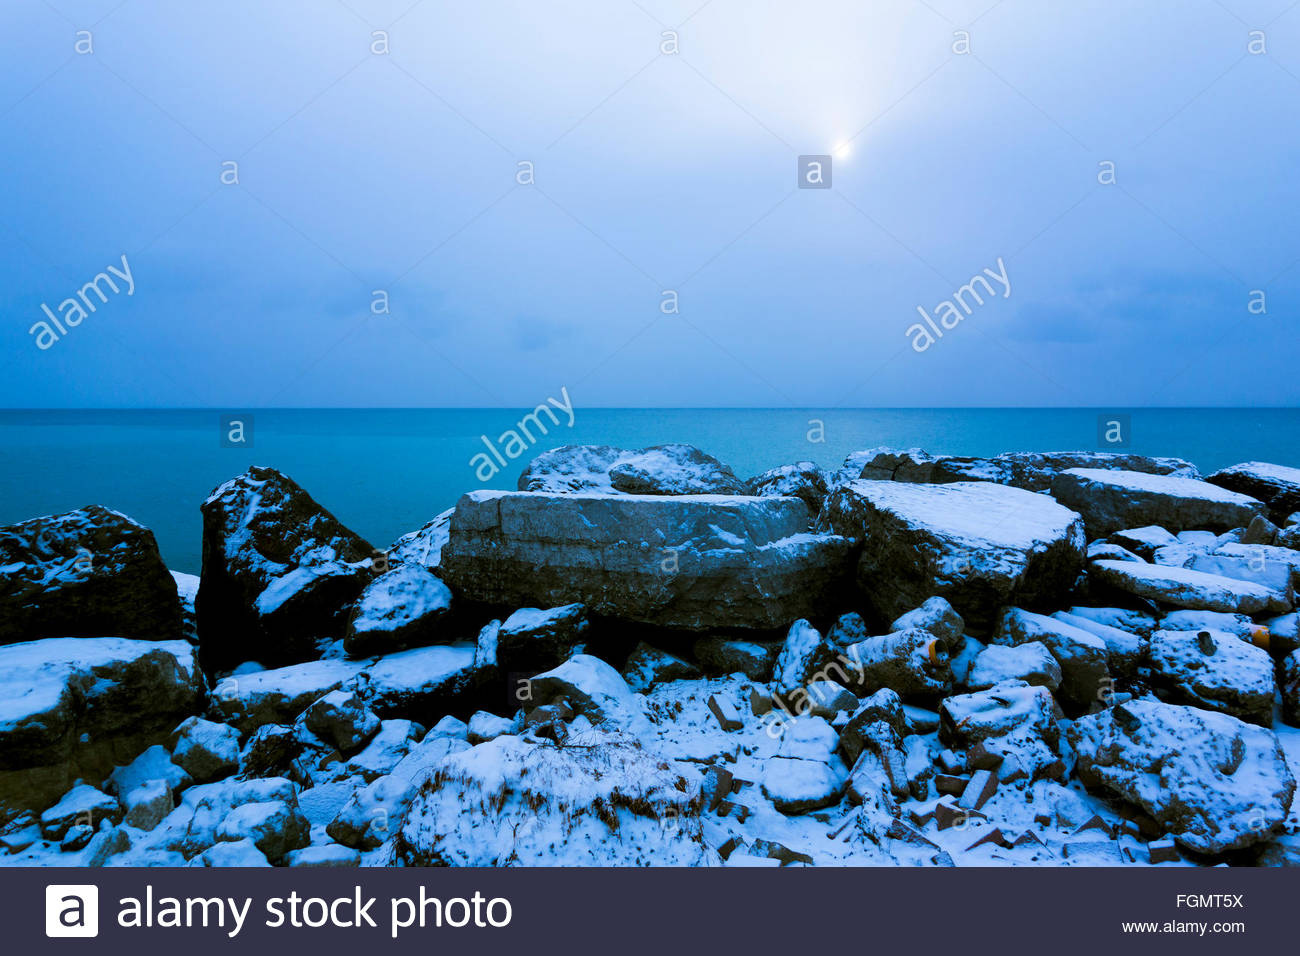 Cold rocky shore of Lake Ontario in winter near Toronto Ontario Canada The Land God gave to Cain bleak desolate - Stock Image